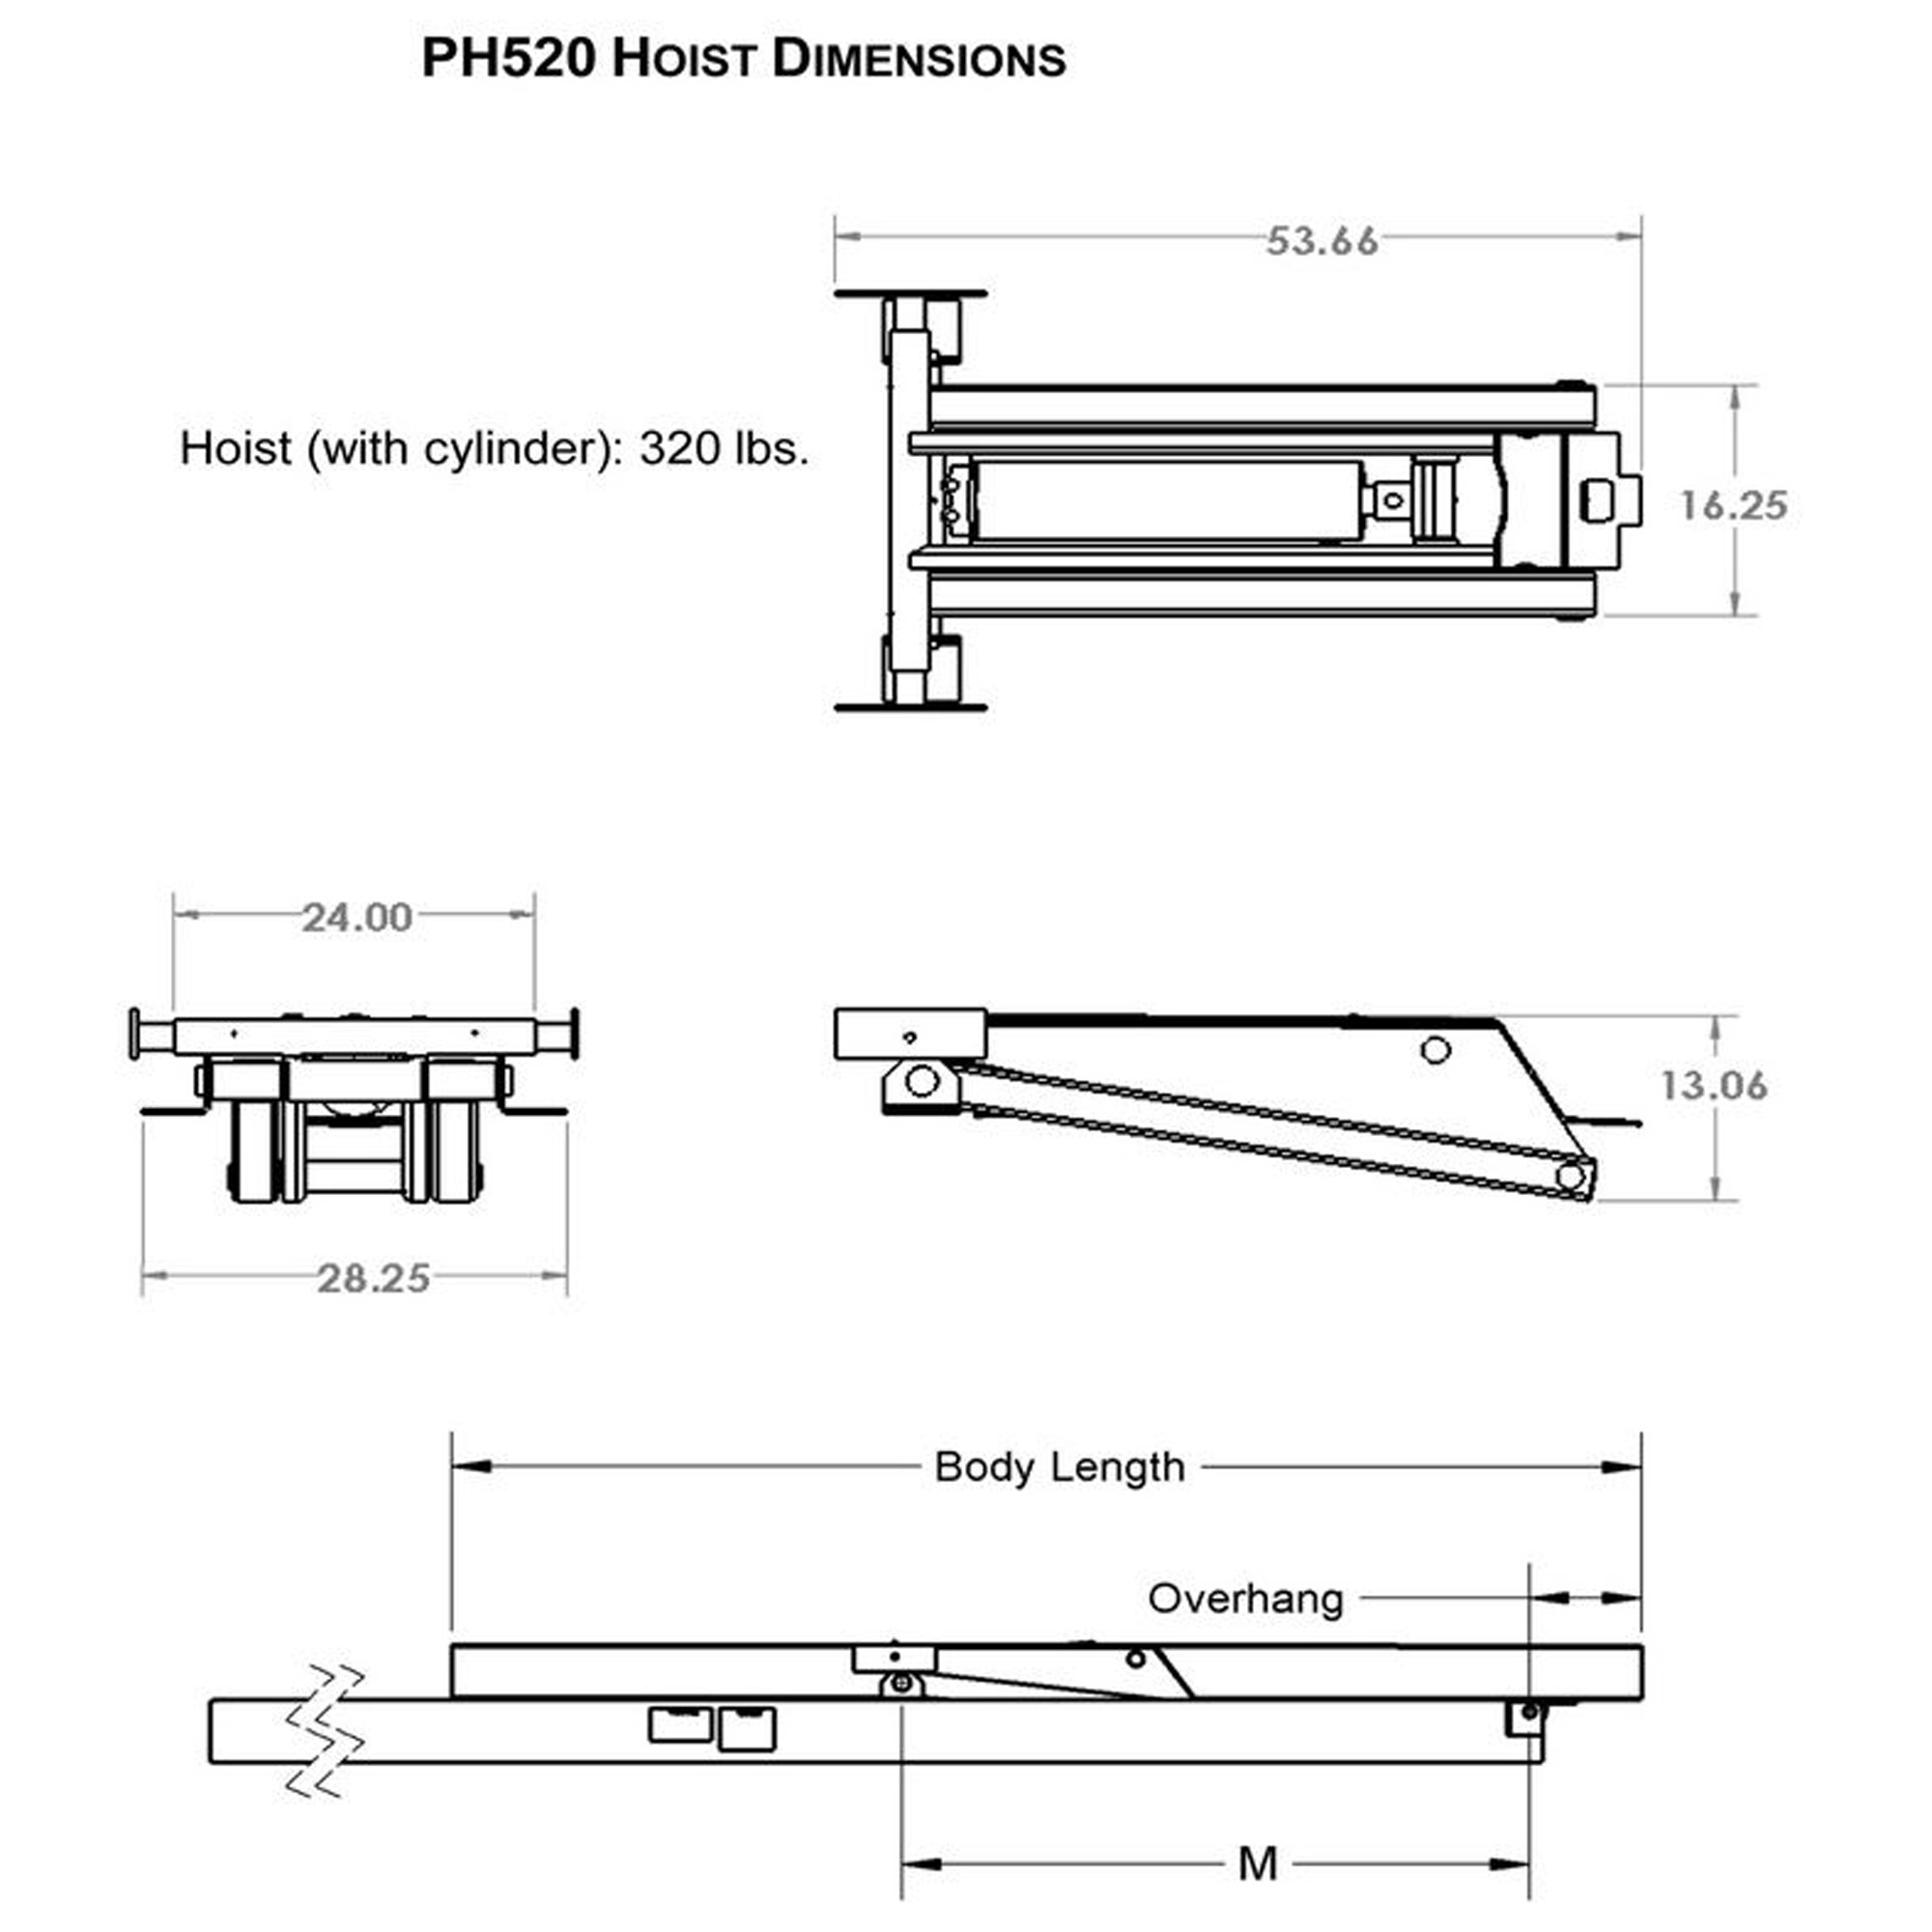 Premium Supply PH520 Power Hoist Dimensions?x88201 10 ton (20,000 lb) dump trailer hydraulic scissor hoist kit ph520 dump trailer hydraulic pump wiring diagram at mifinder.co